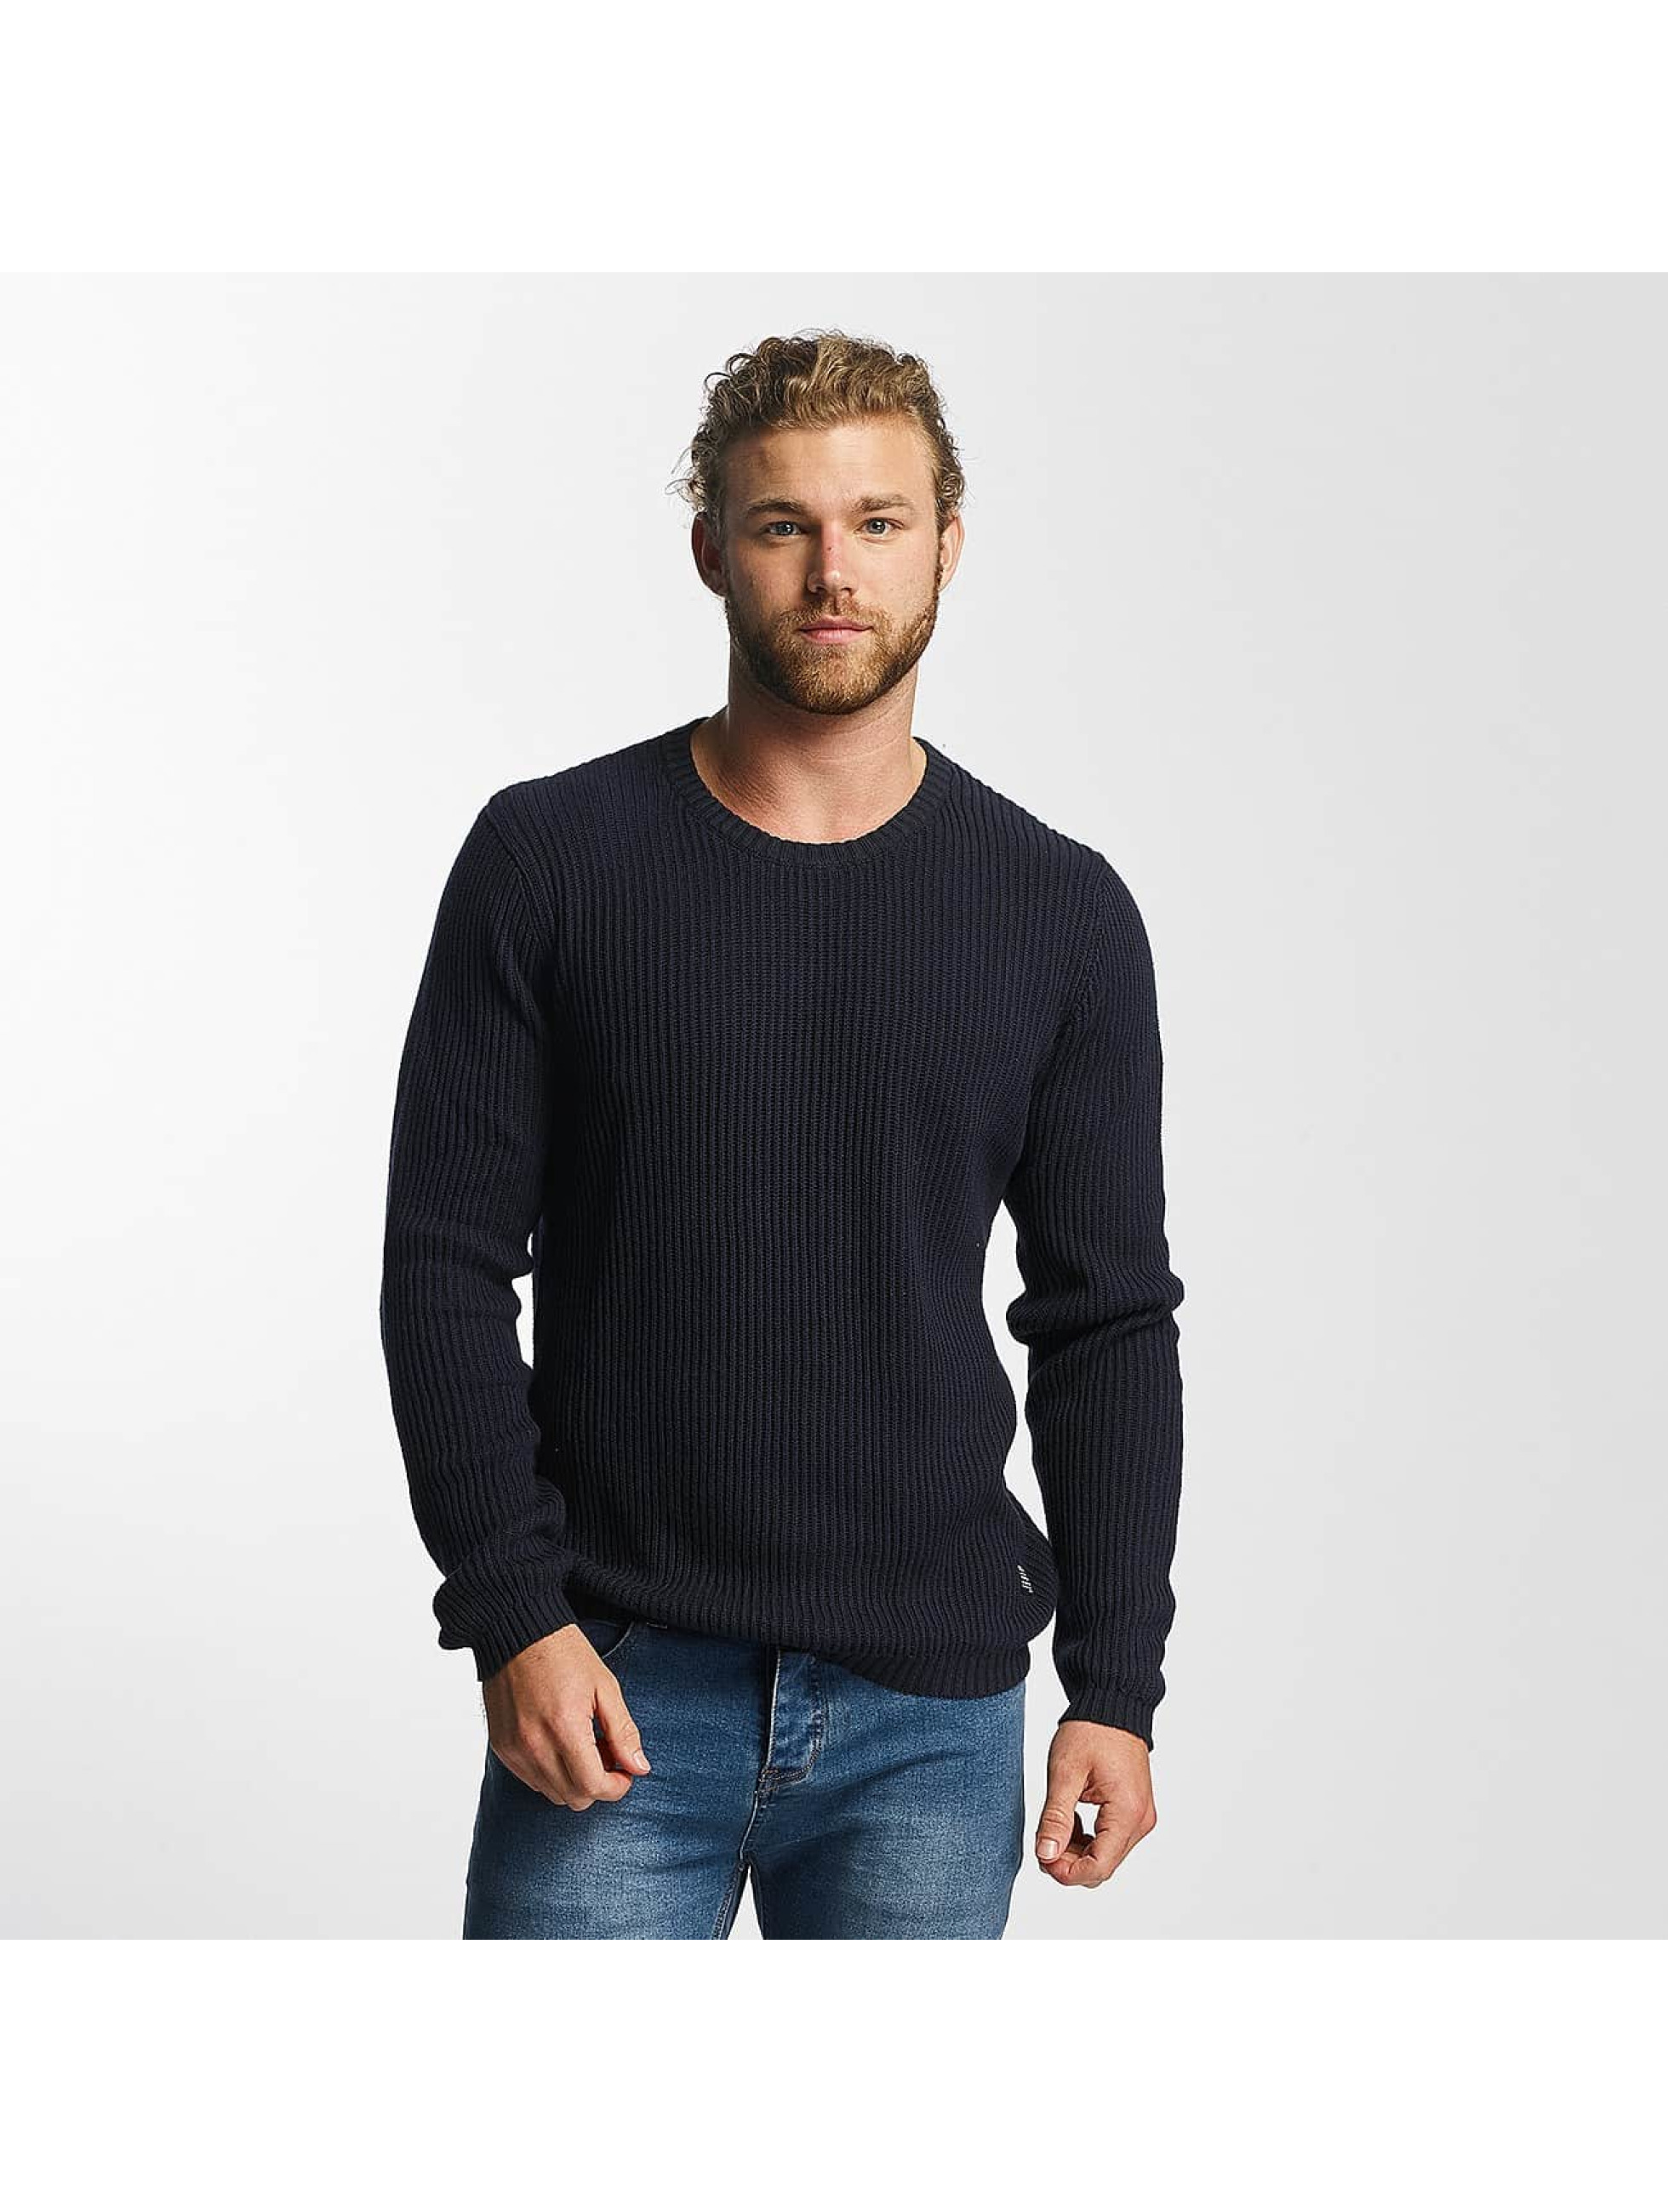 SHINE Original Männer Pullover O-Neck Knit in blau